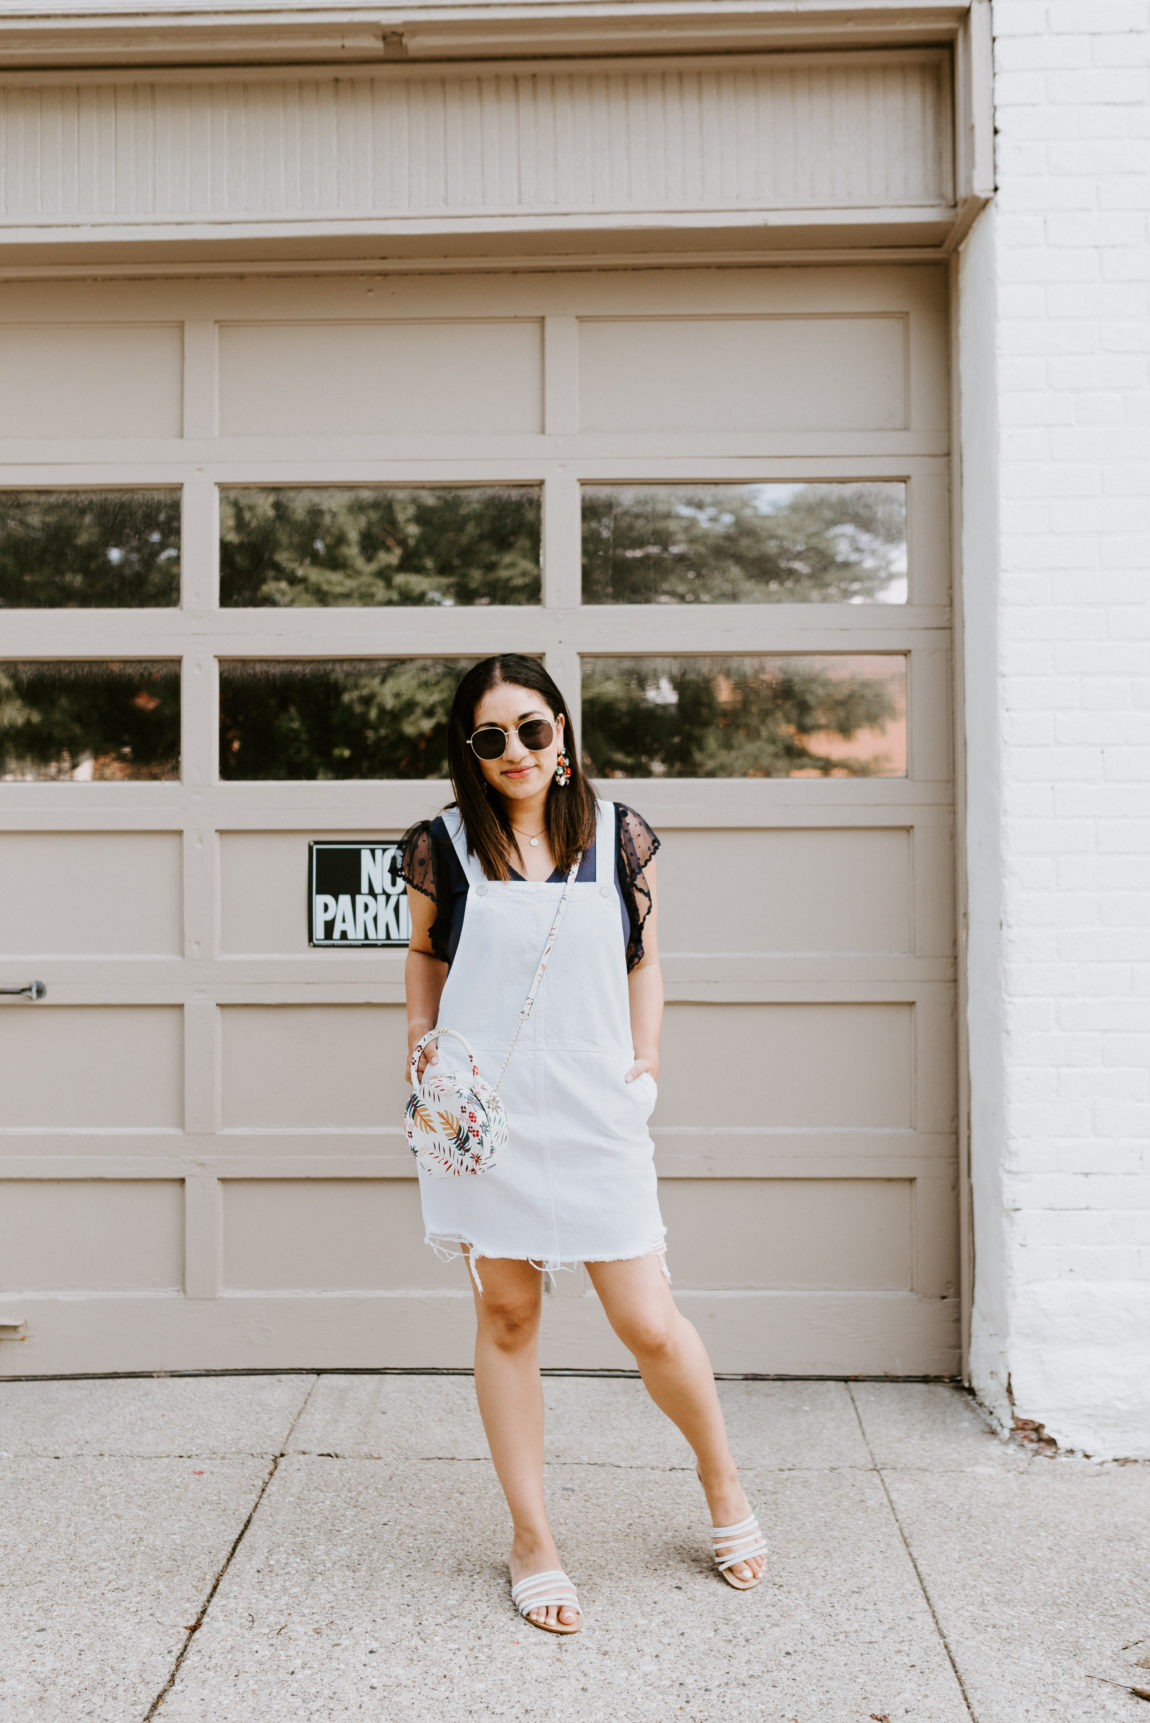 On the hunt for an overalls dress? This white version is adorable!